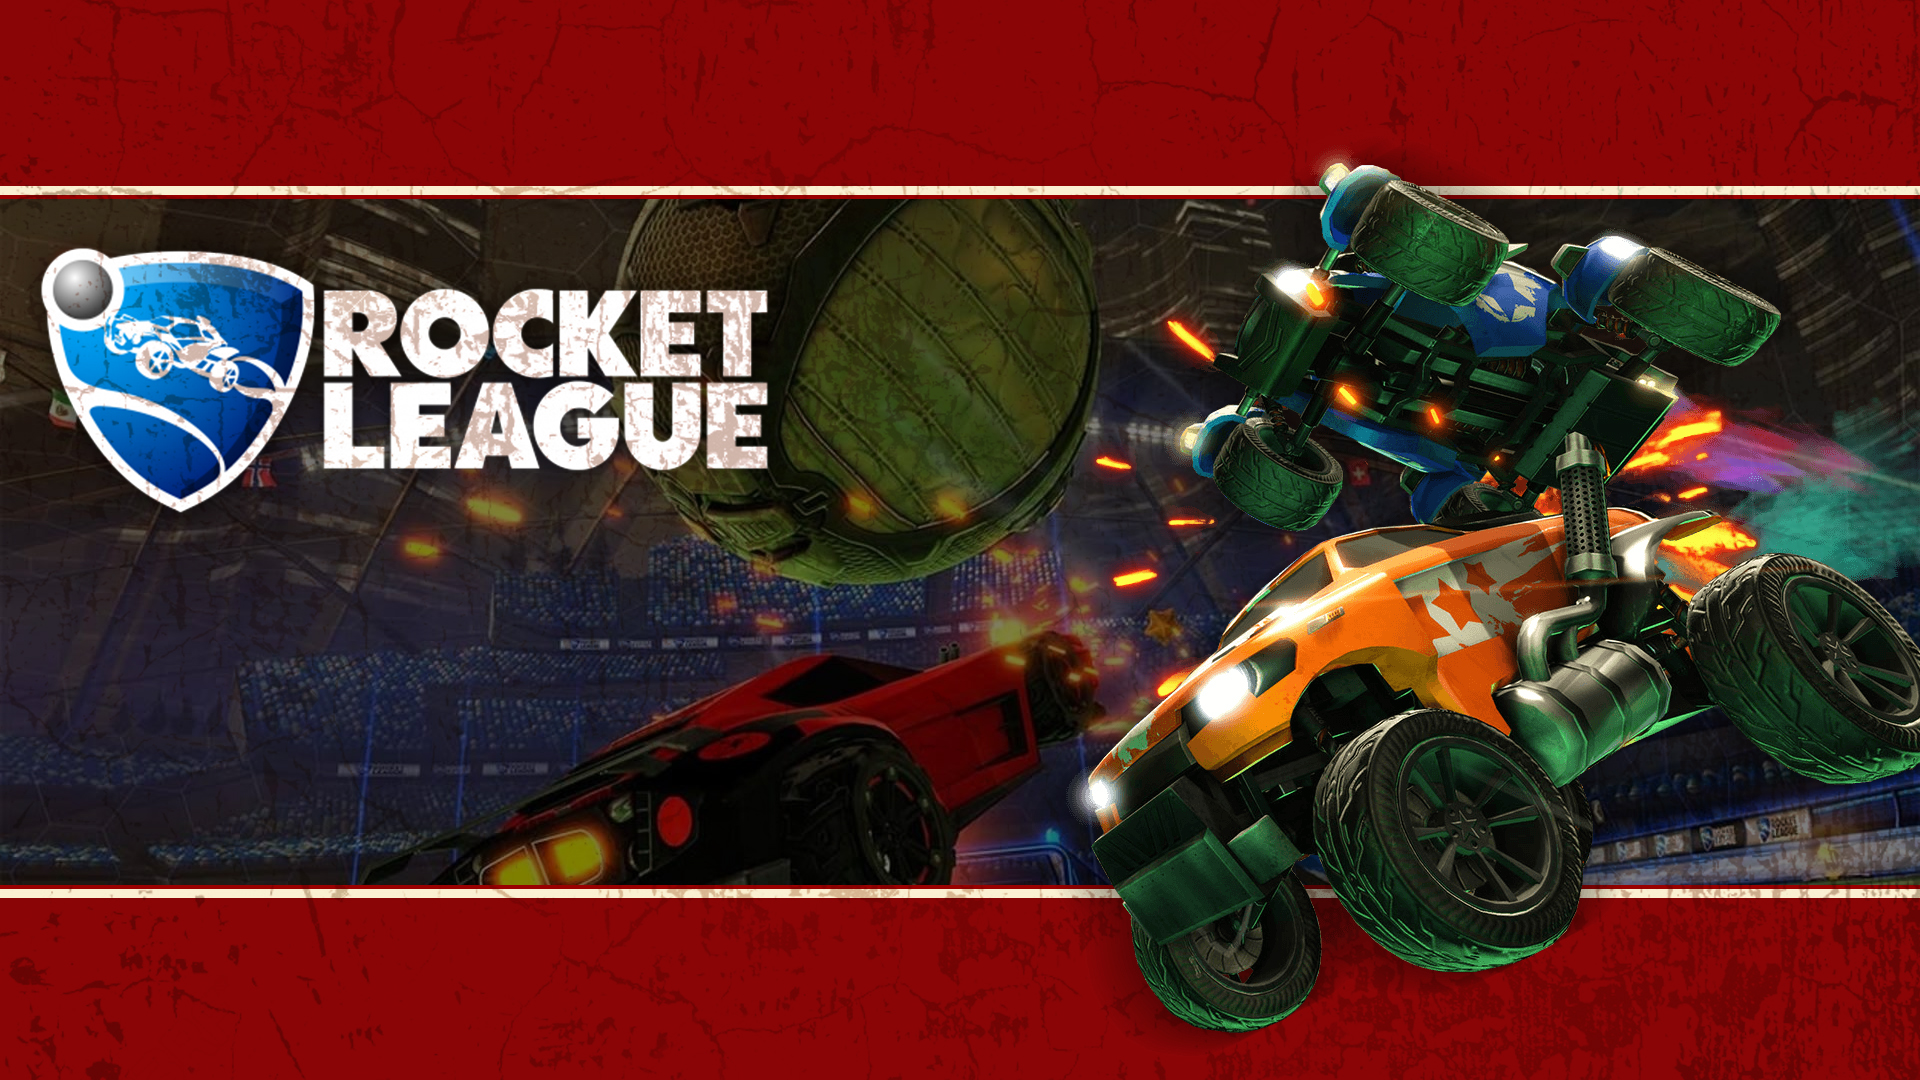 12.00 - Rocket League 3v3